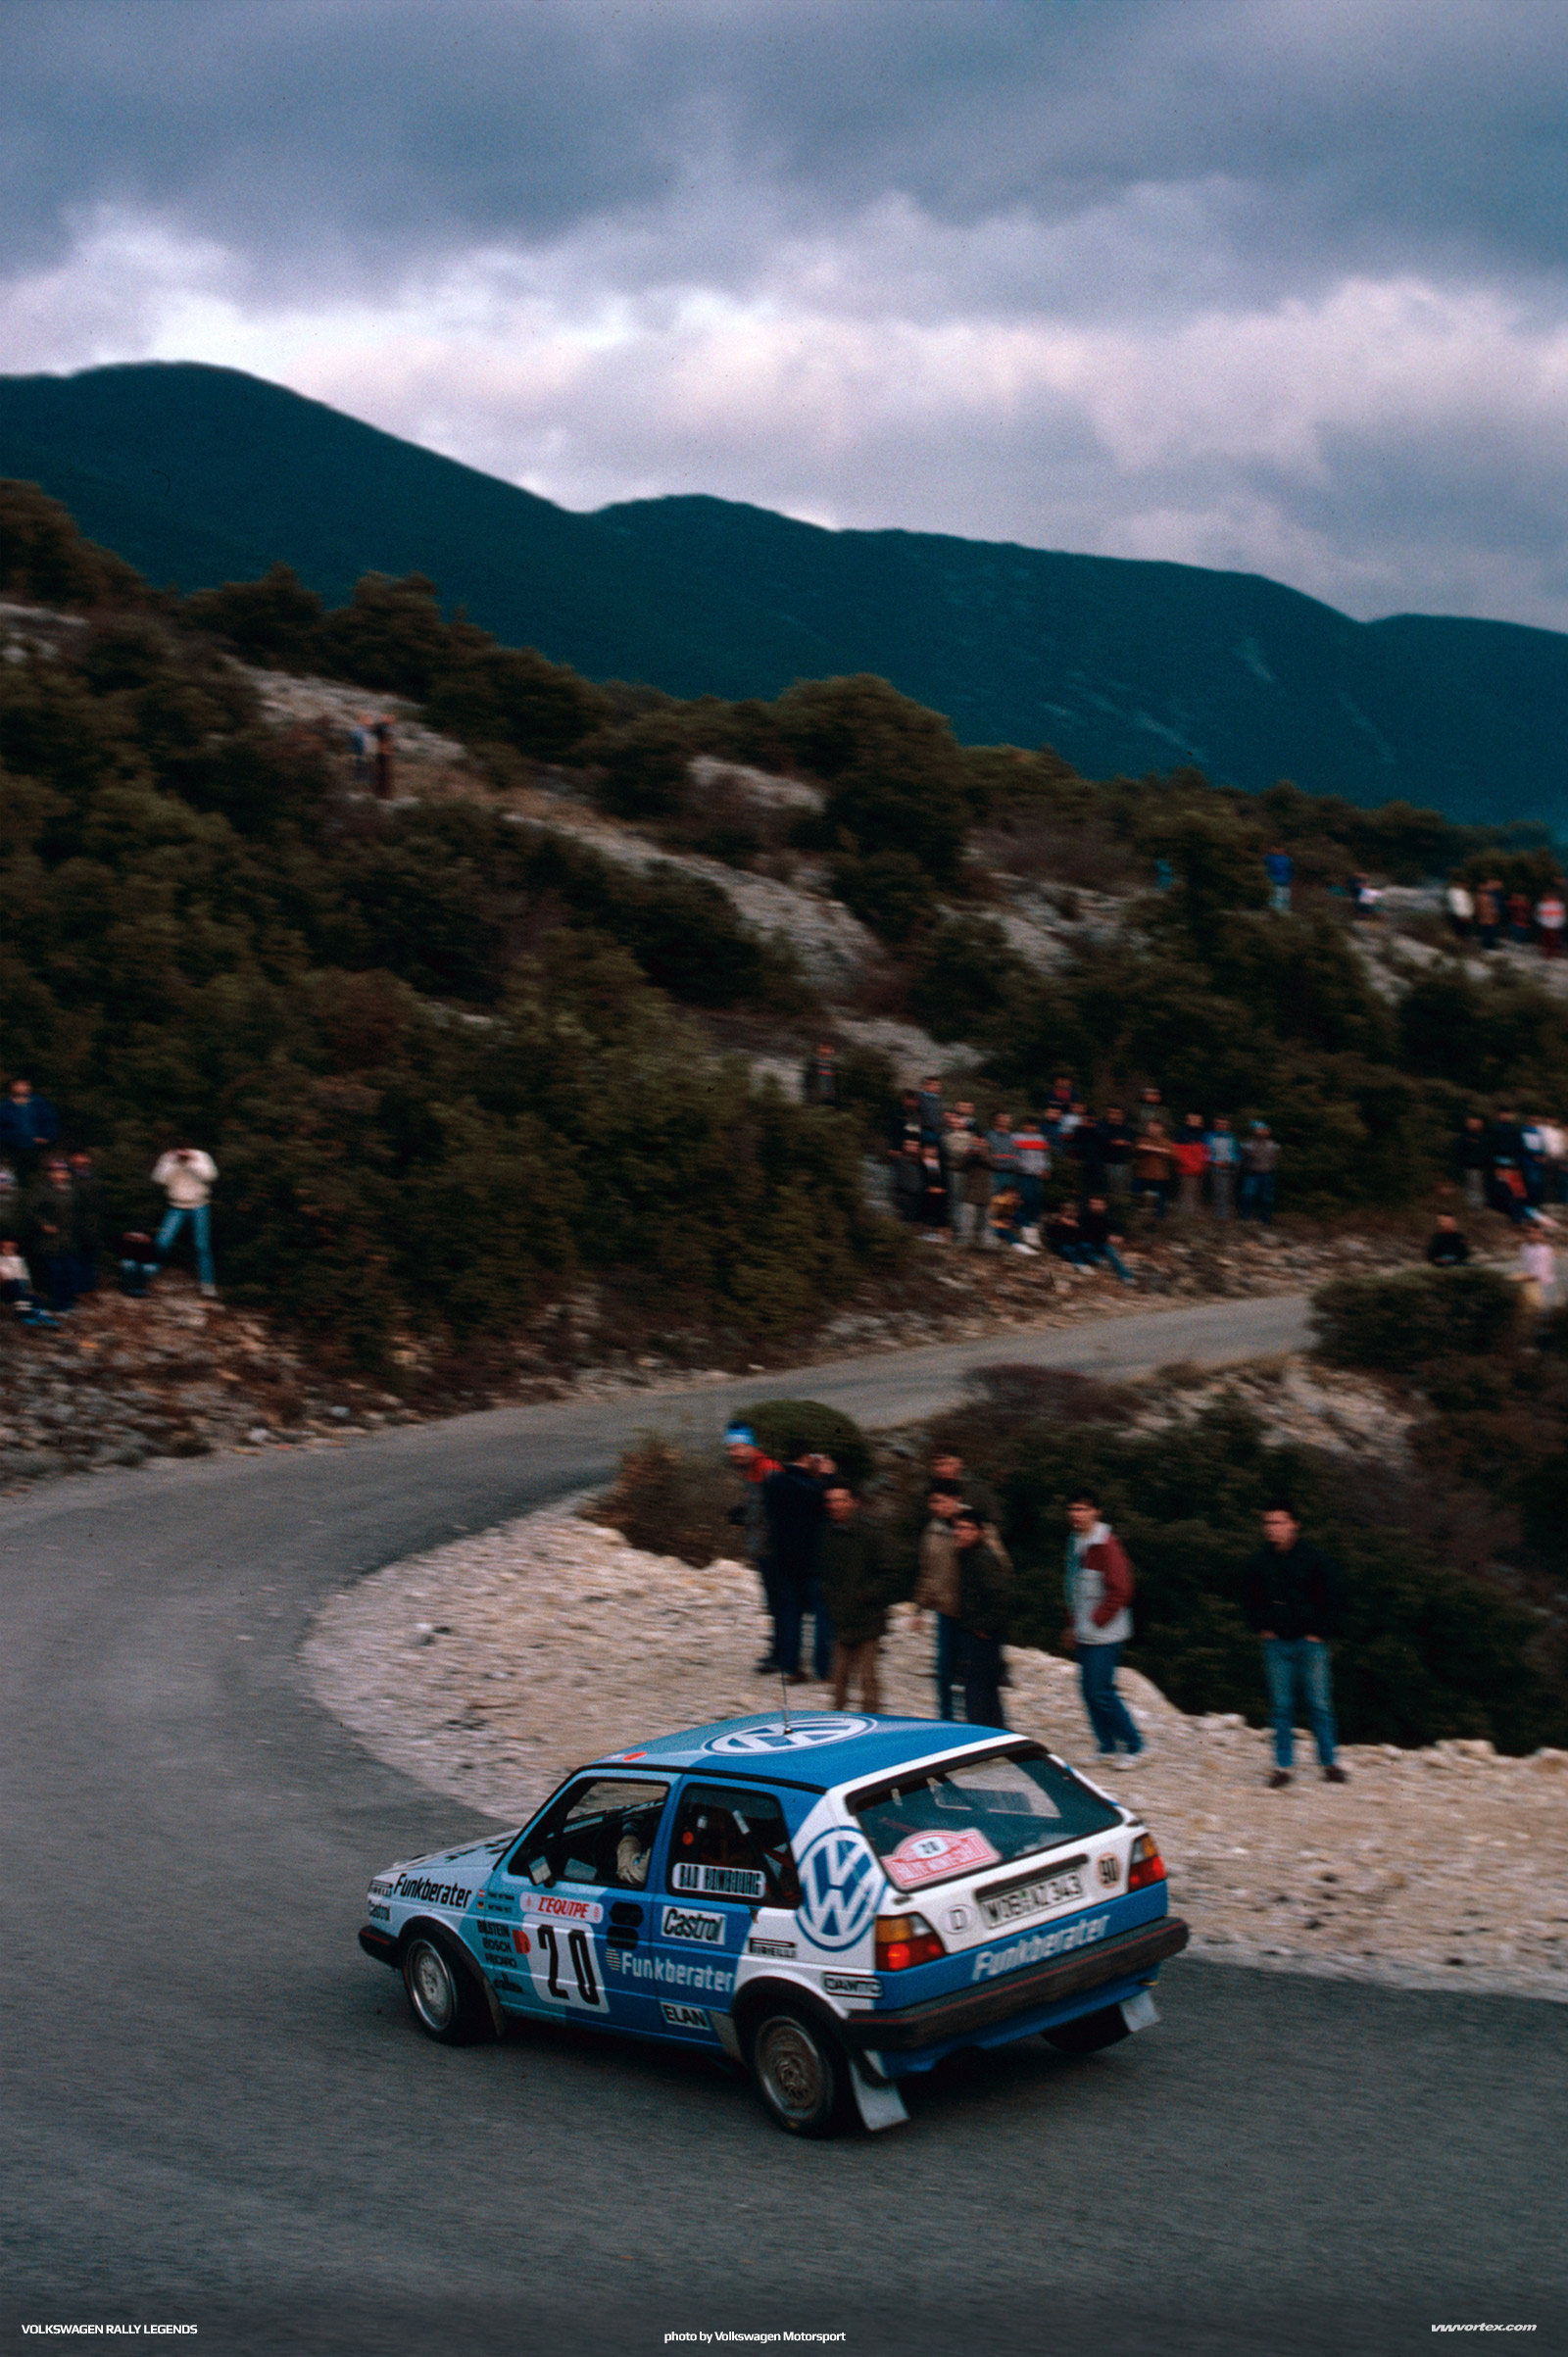 volkswagen-rally-legends-379